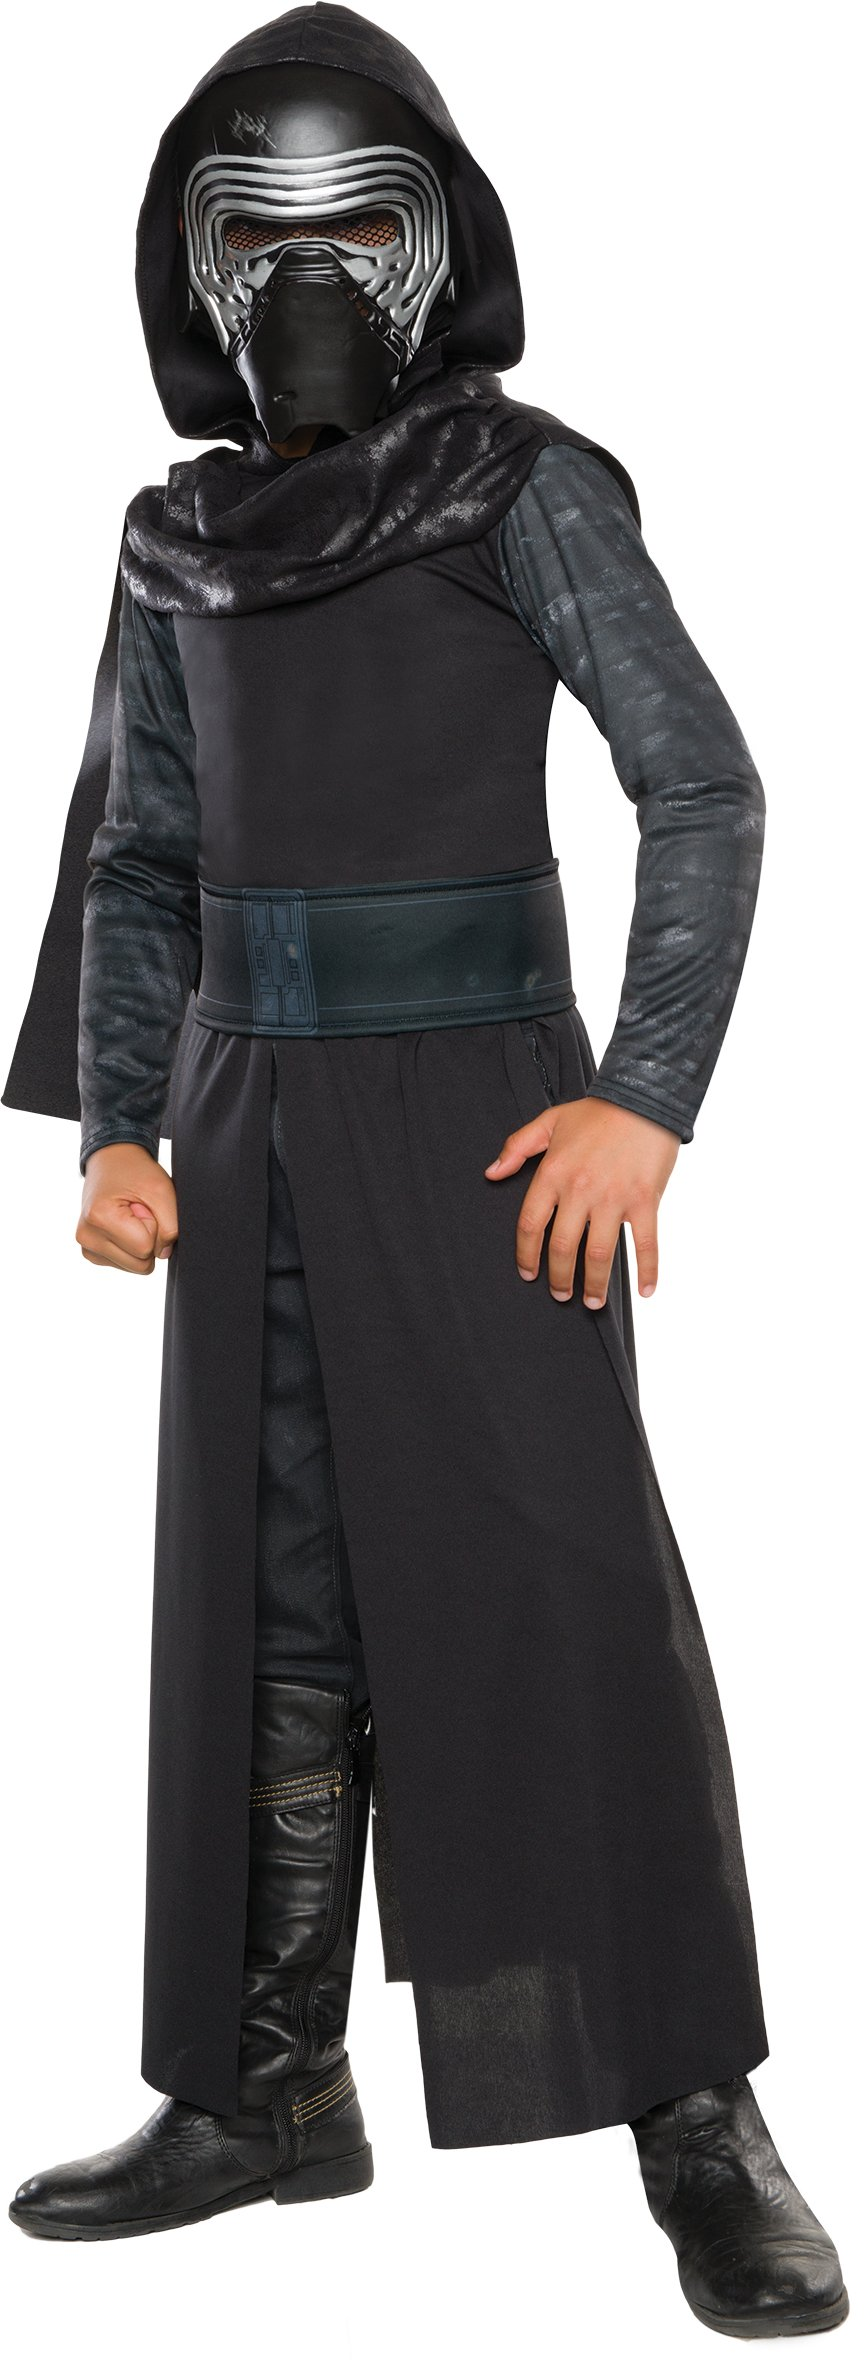 Star Wars: The Force Awakens Child's Kylo Ren Costume, Large by Rubie's